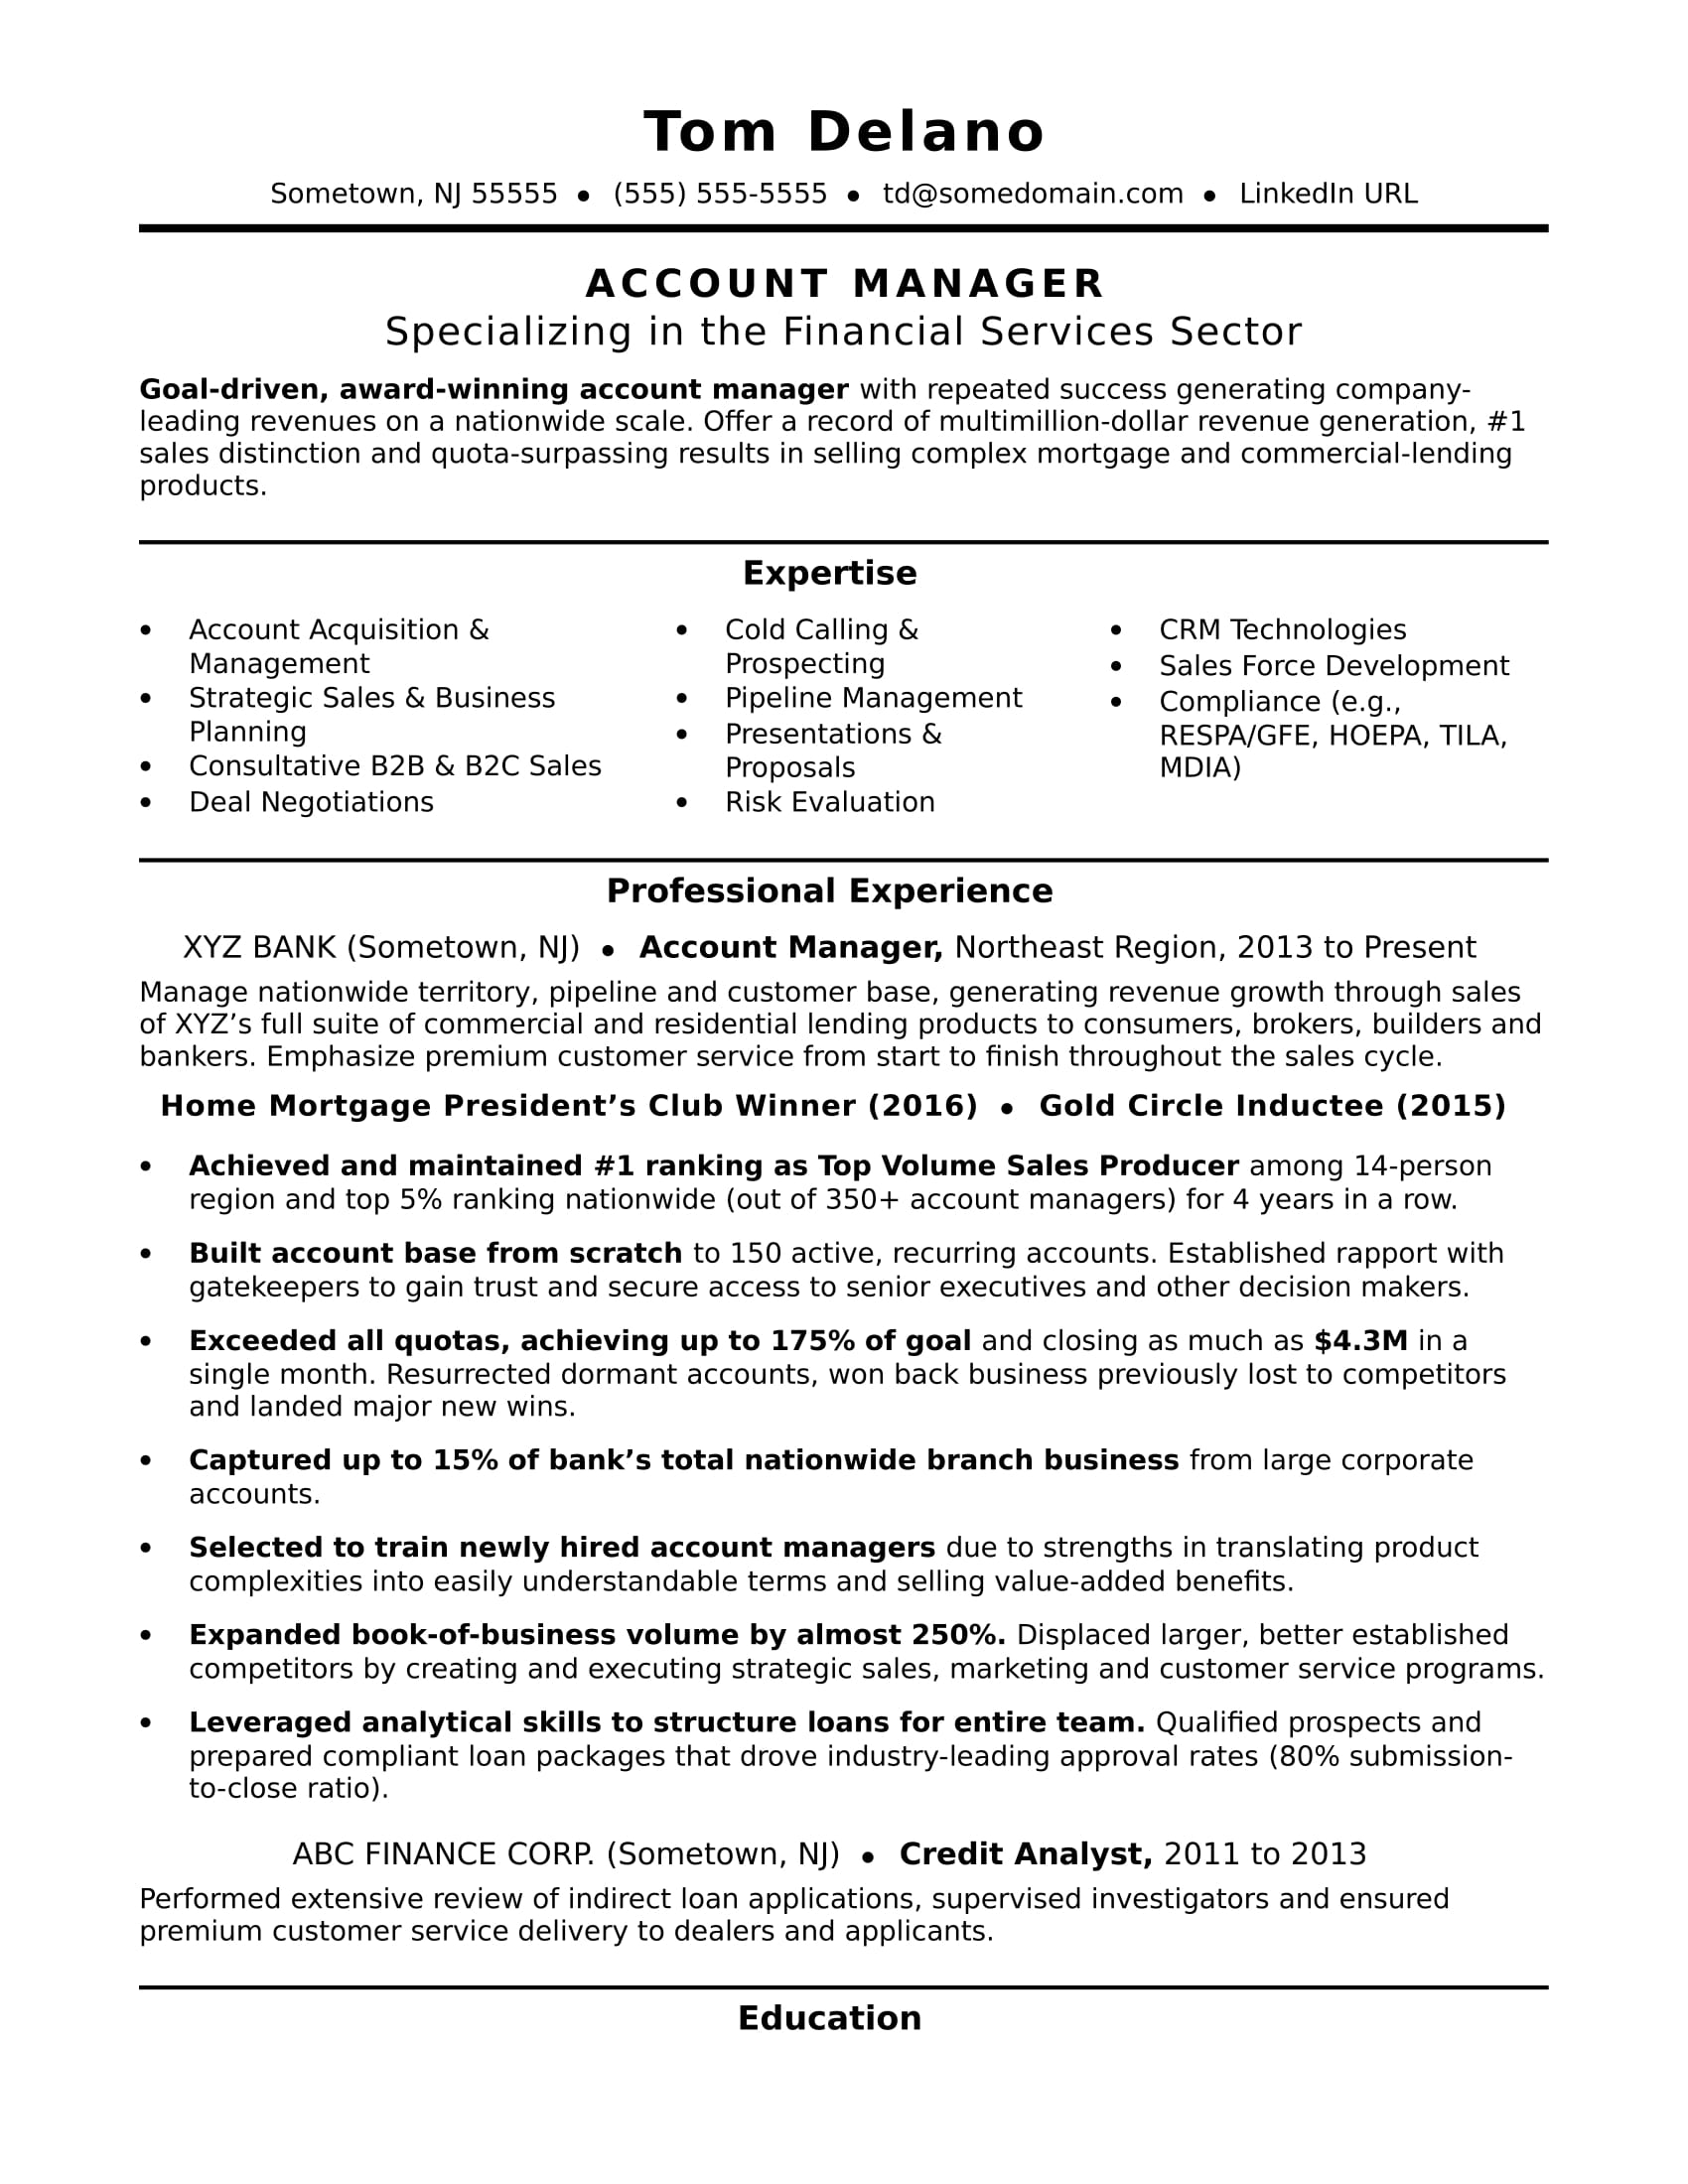 account manager resume sample monster for client service executive roofer compensation Resume Sample Resume For Client Service Executive